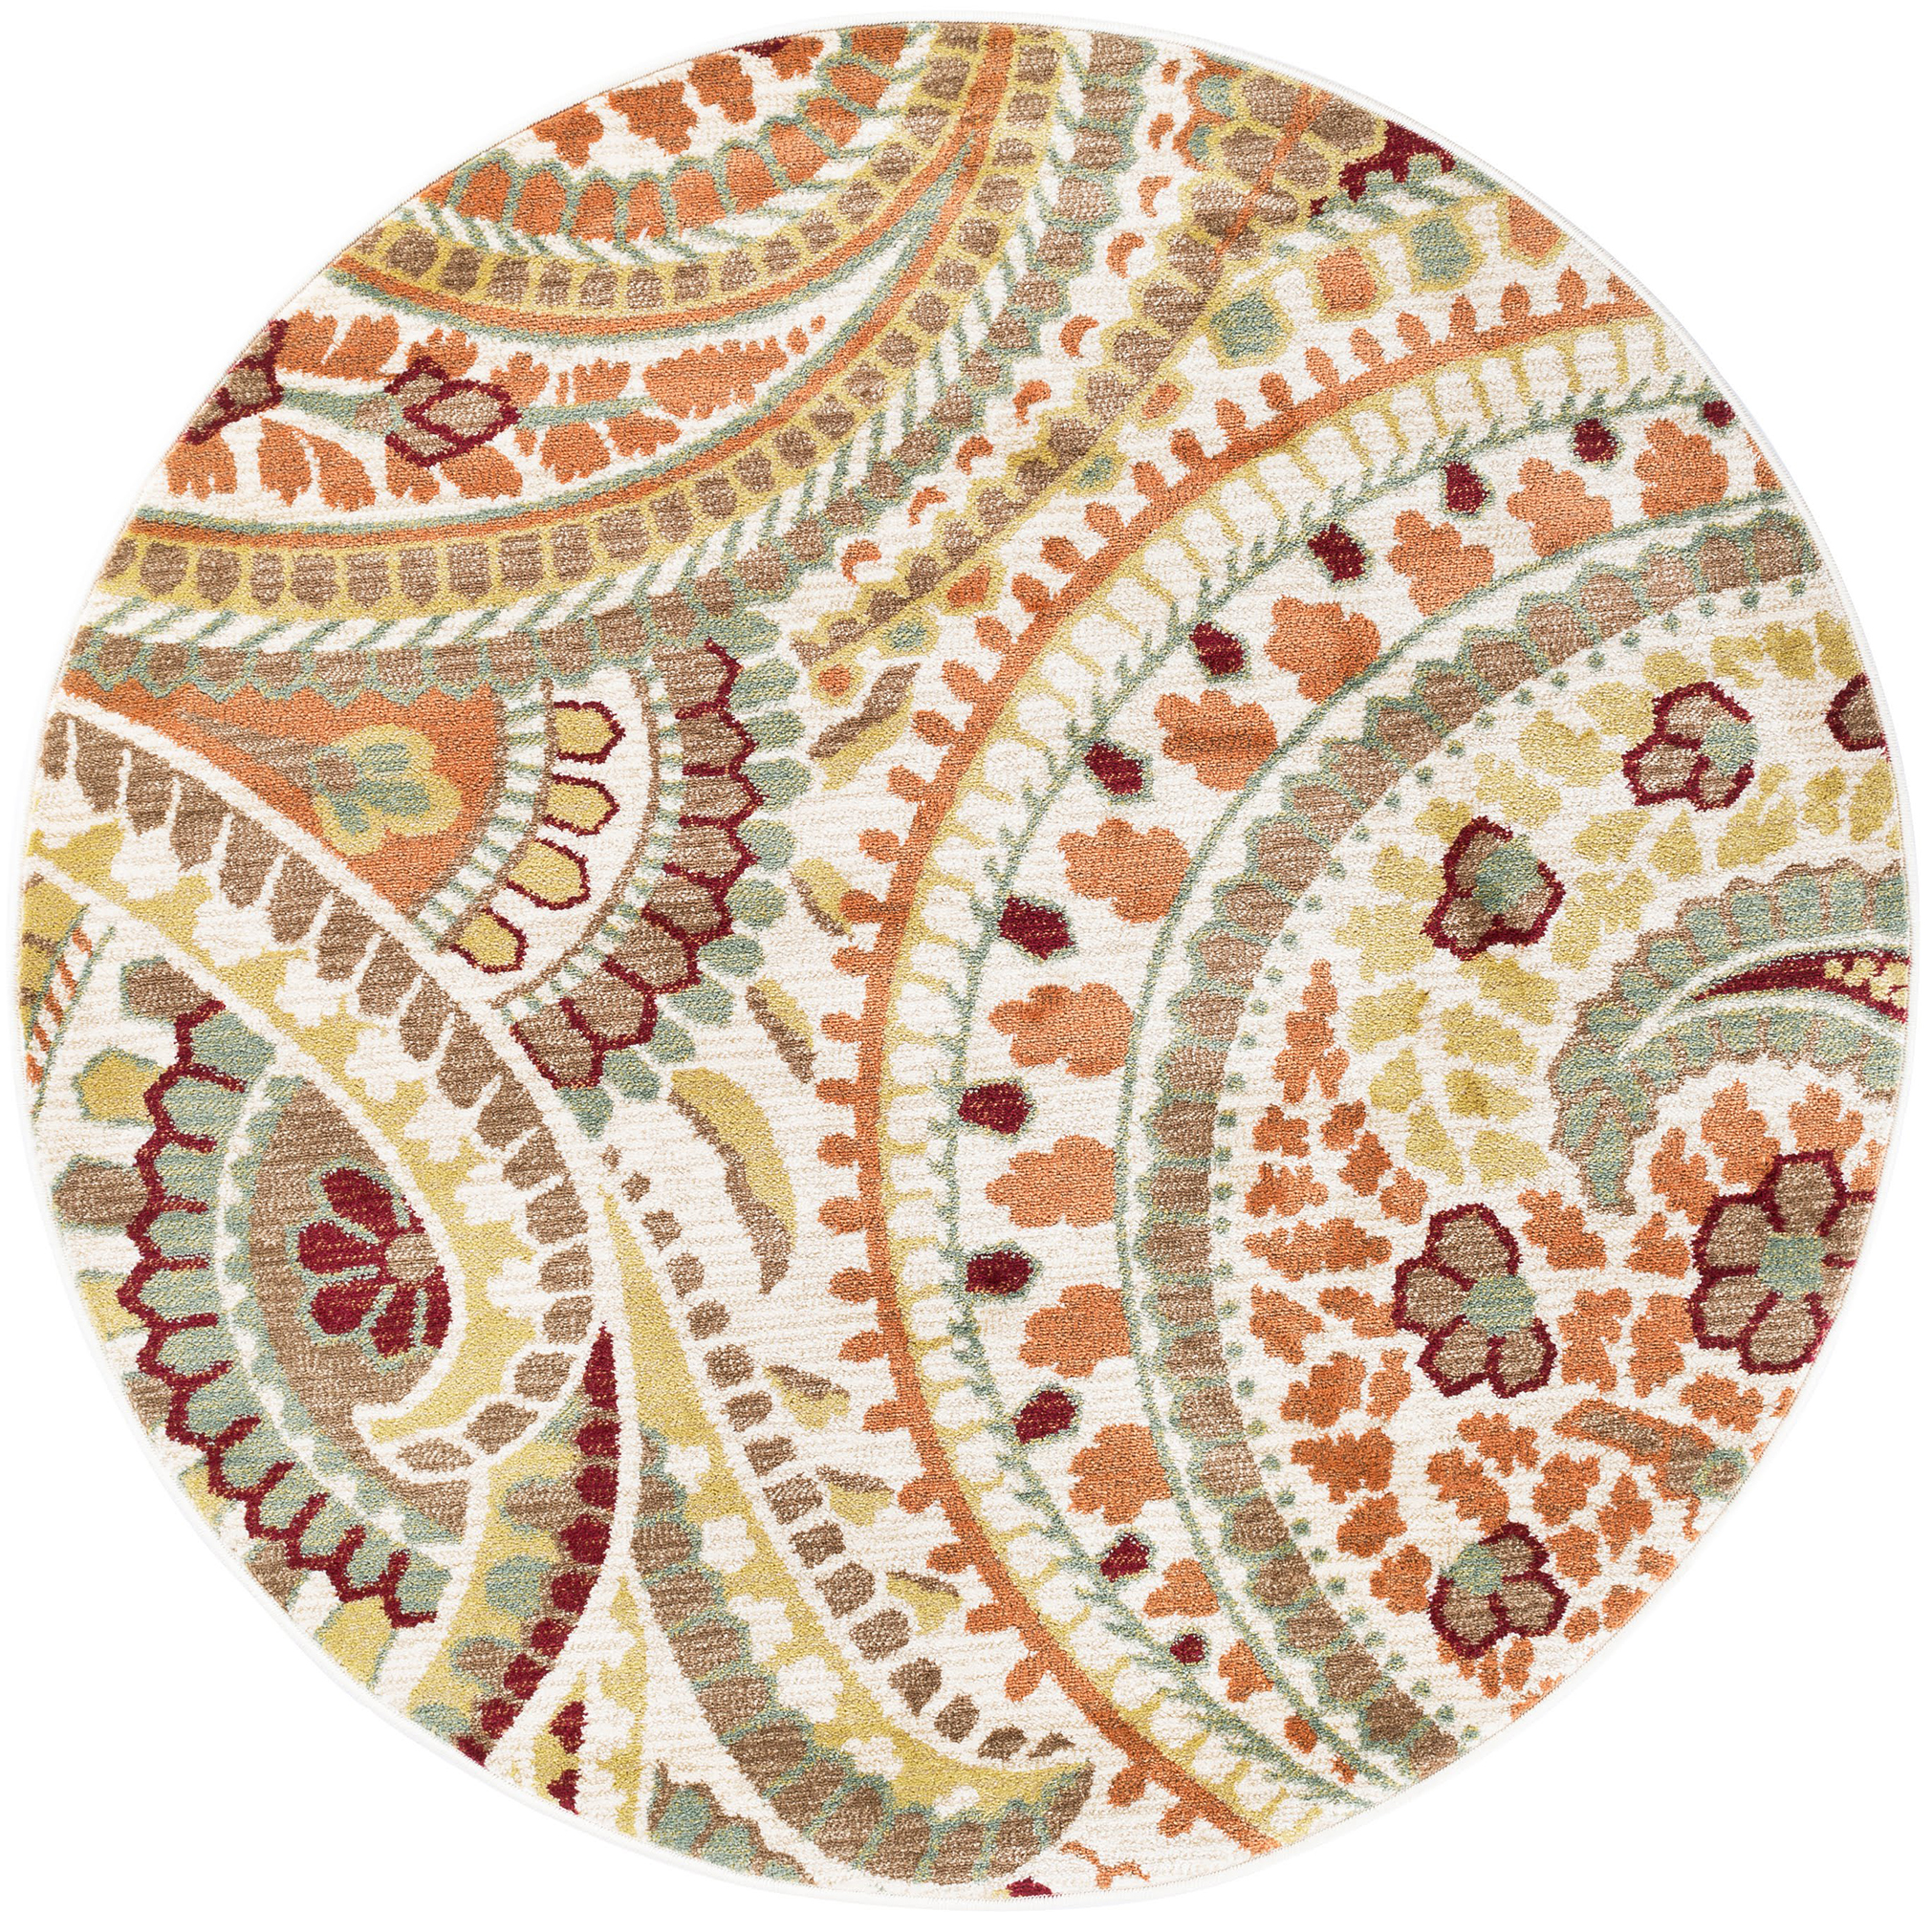 Paisley Area Rugs: Ivory Transitional Paisley Area Rug Floral Leaves Multi